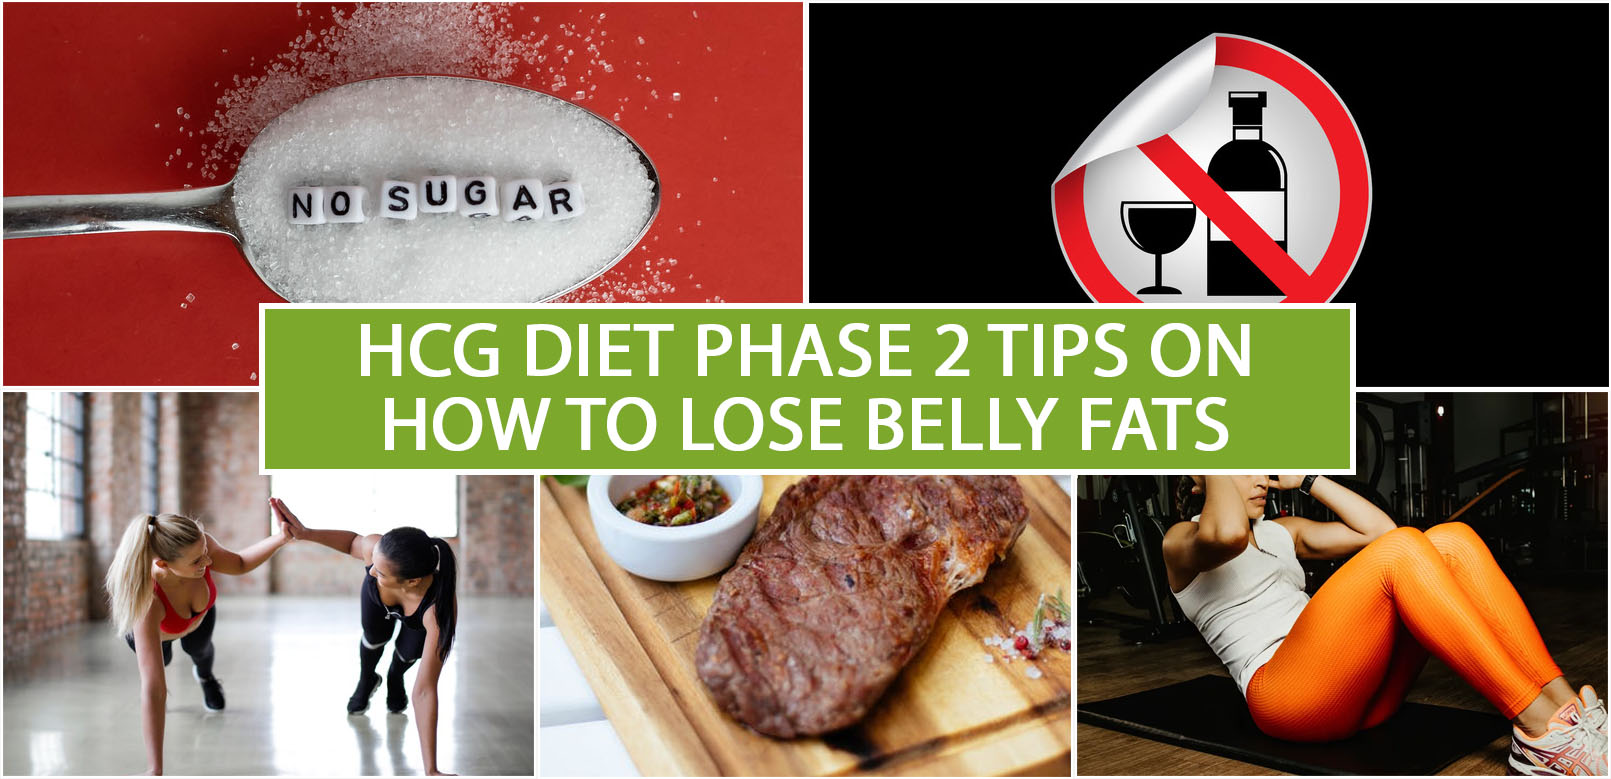 HCG DIET PHASE 2 TIPS ON HOW TO LOSE BELLY FATS